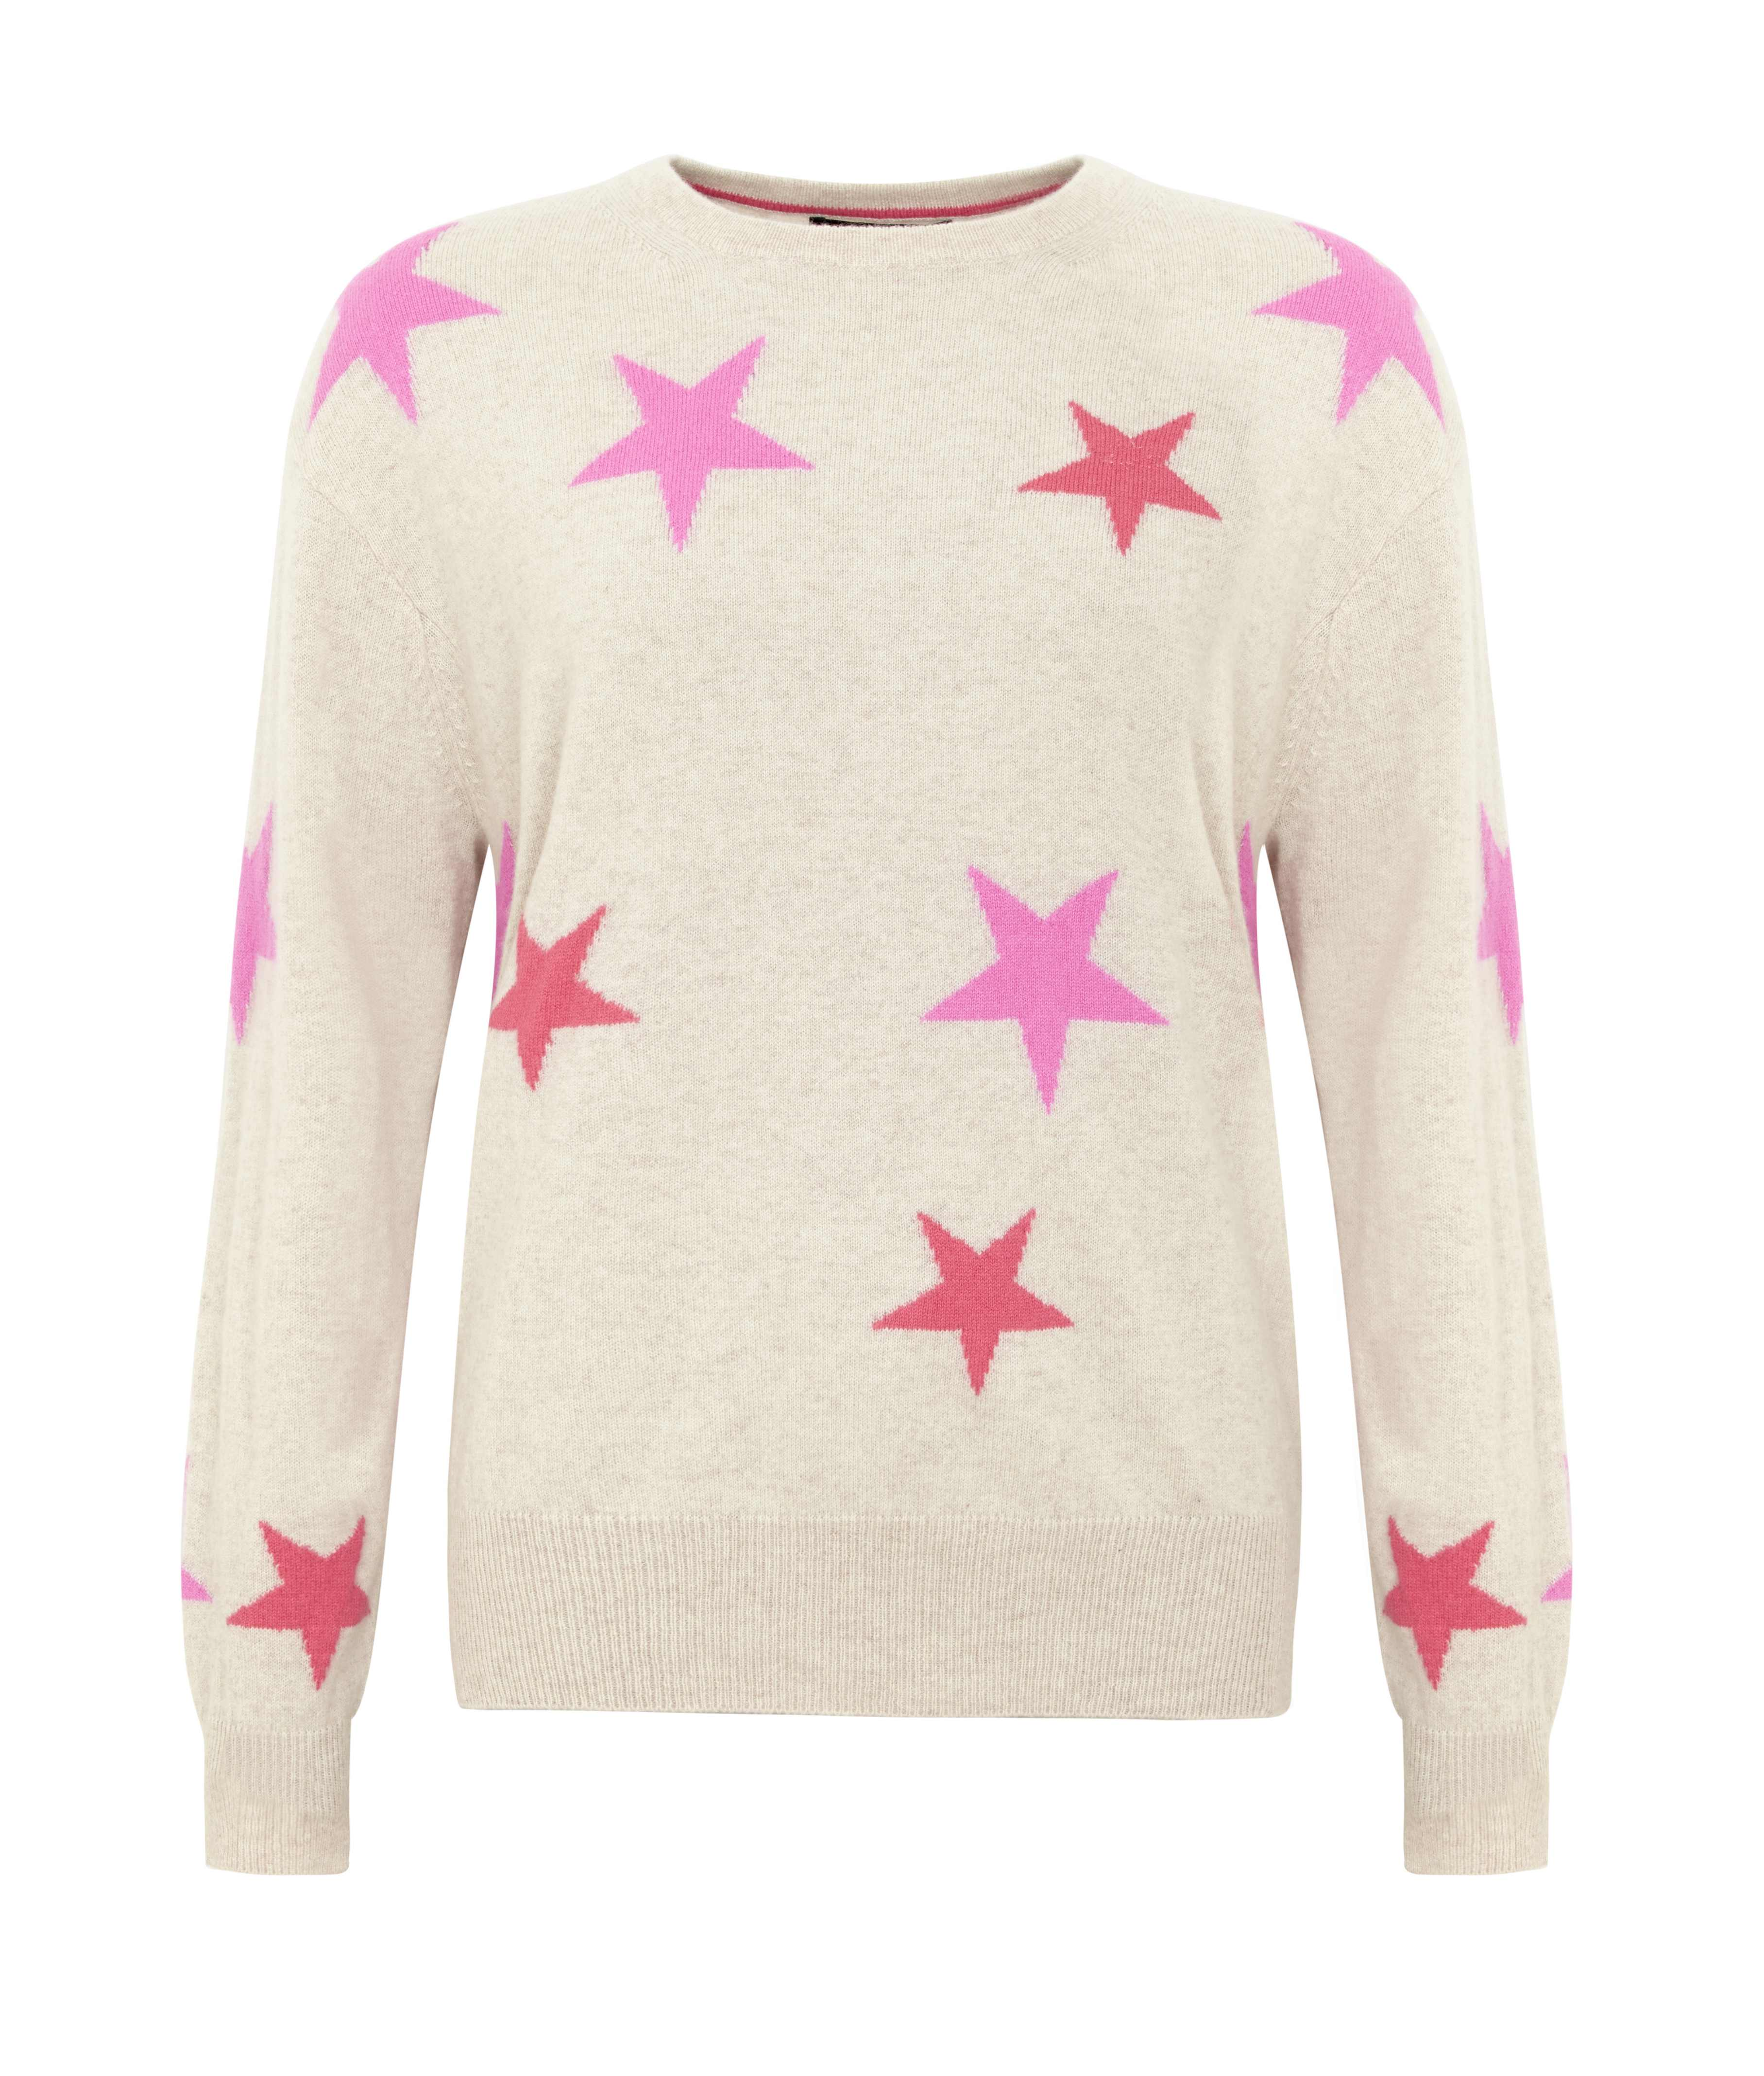 Marks and Spencer Autograph Cashmere Jumper